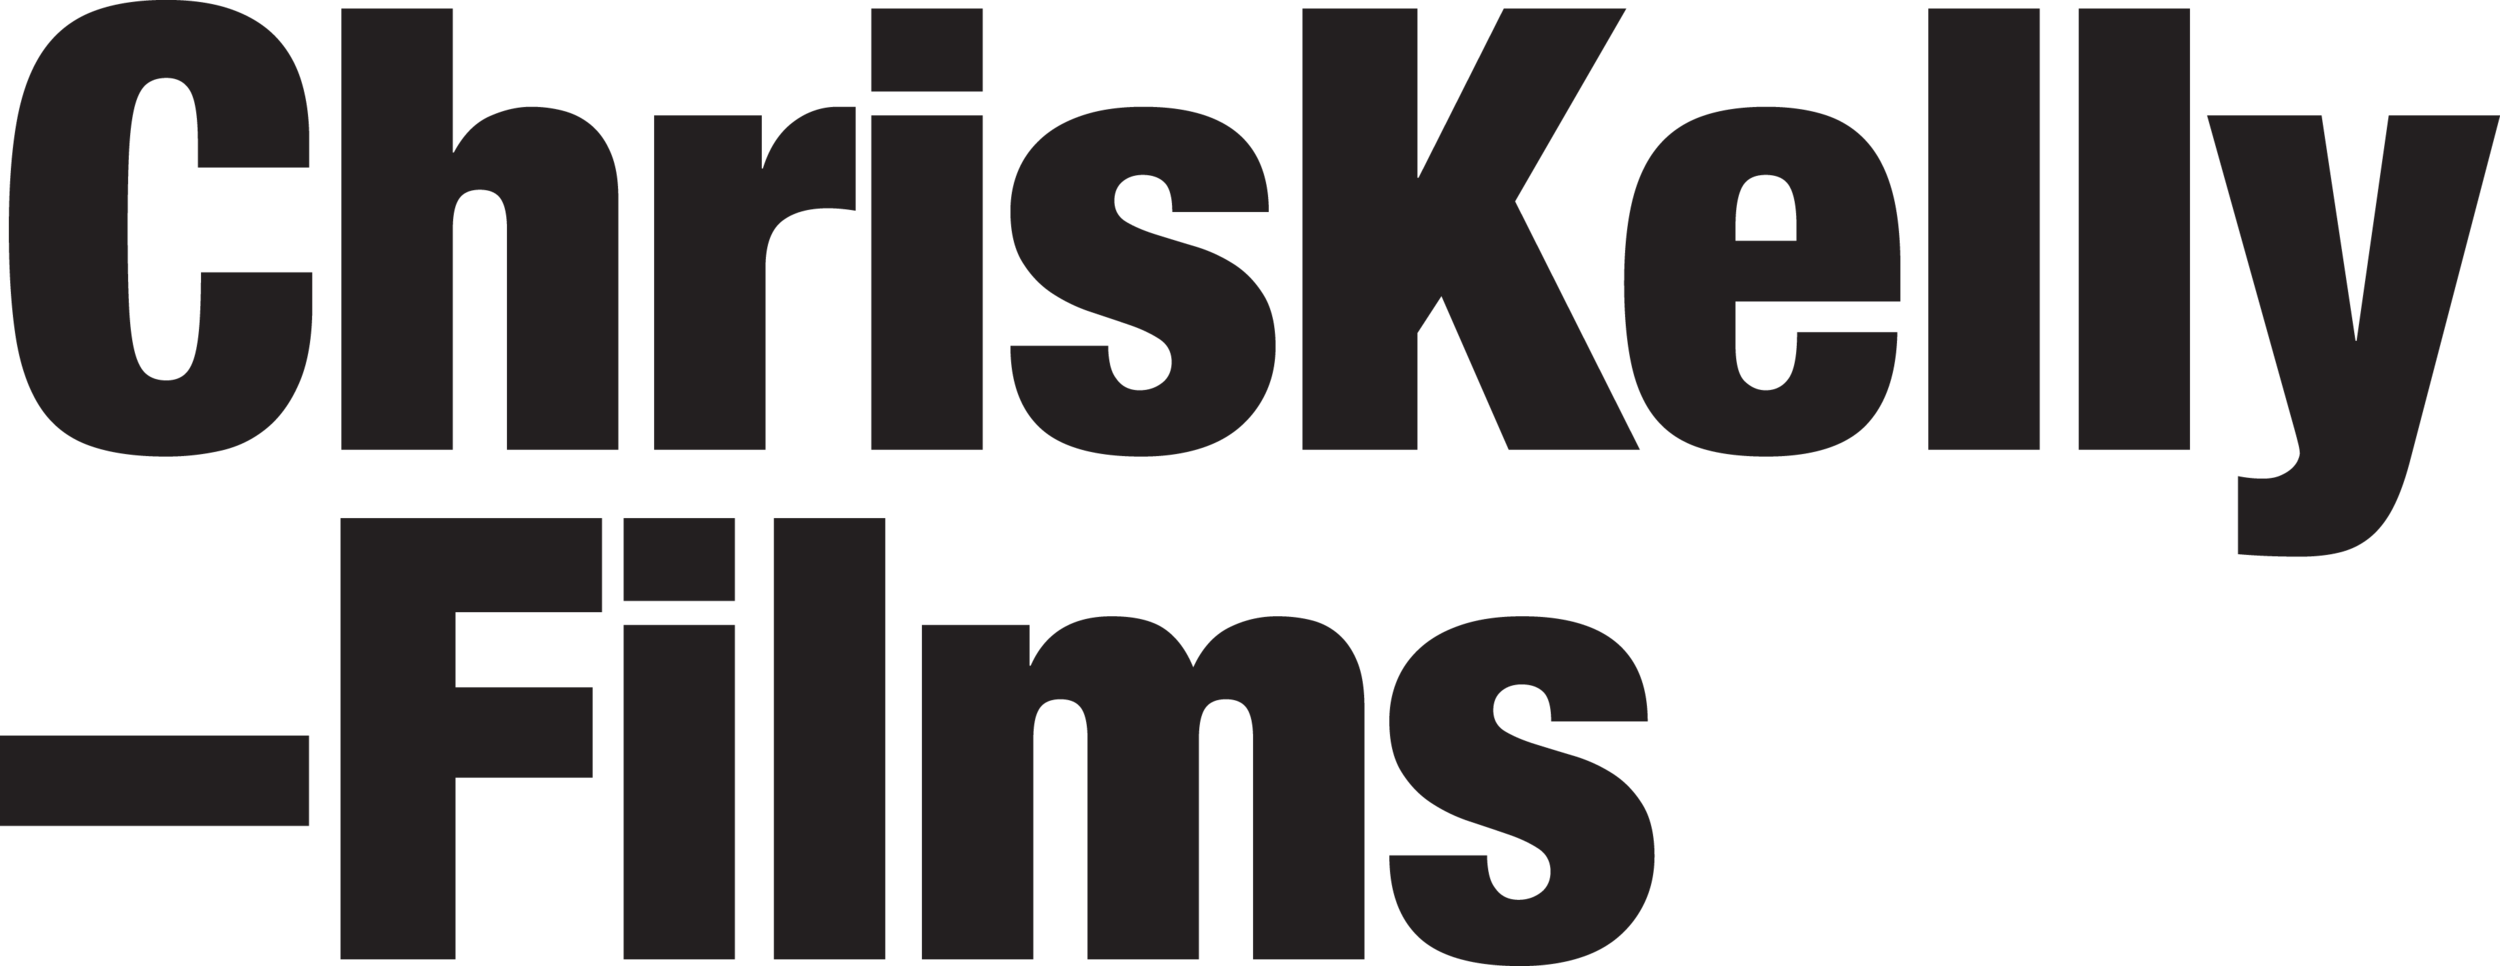 Chris-Kelly-Films-Logo-Black.png